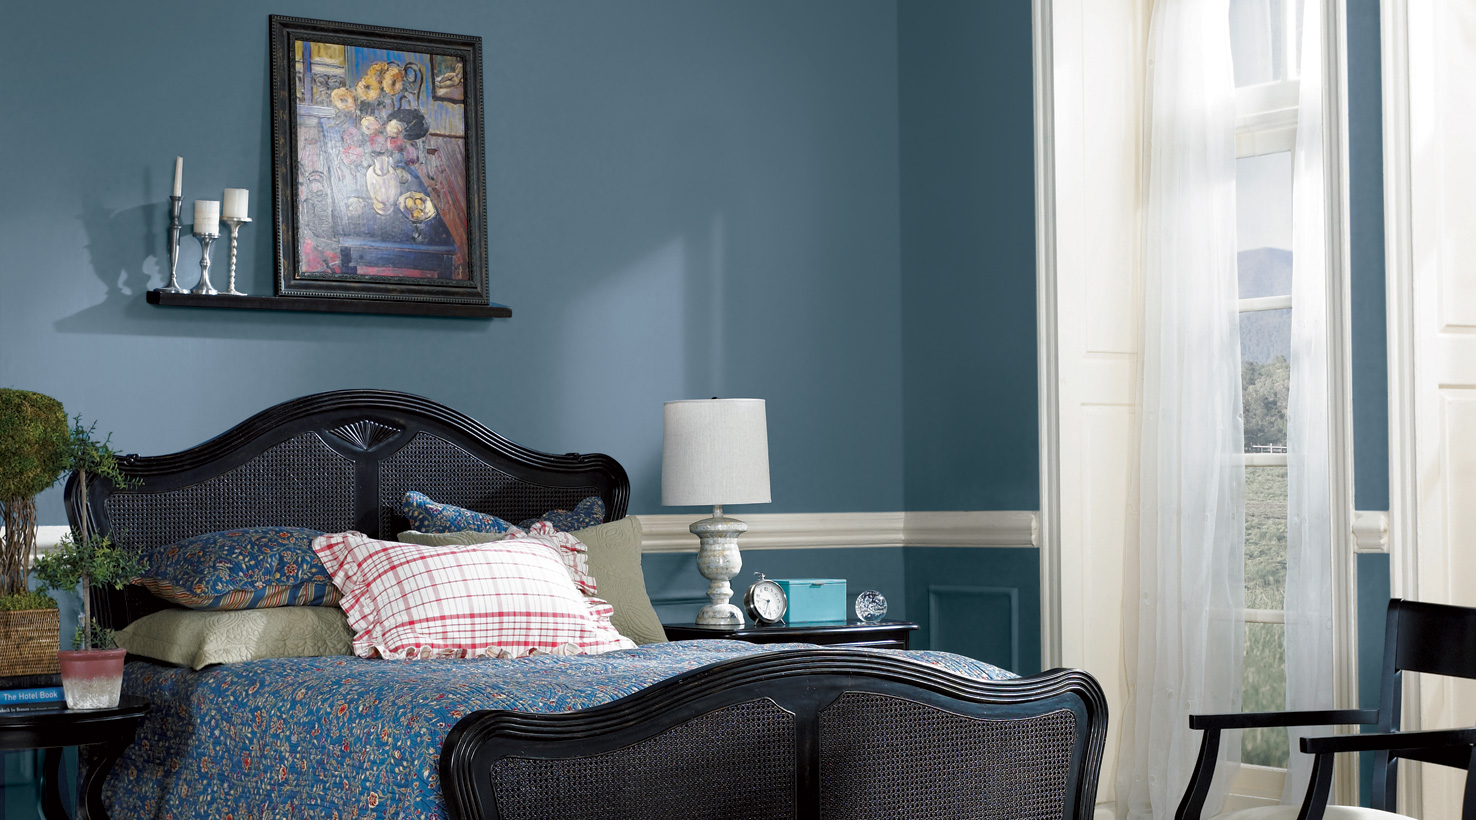 paint colors for bedrooms 1 ... pzpwqxw